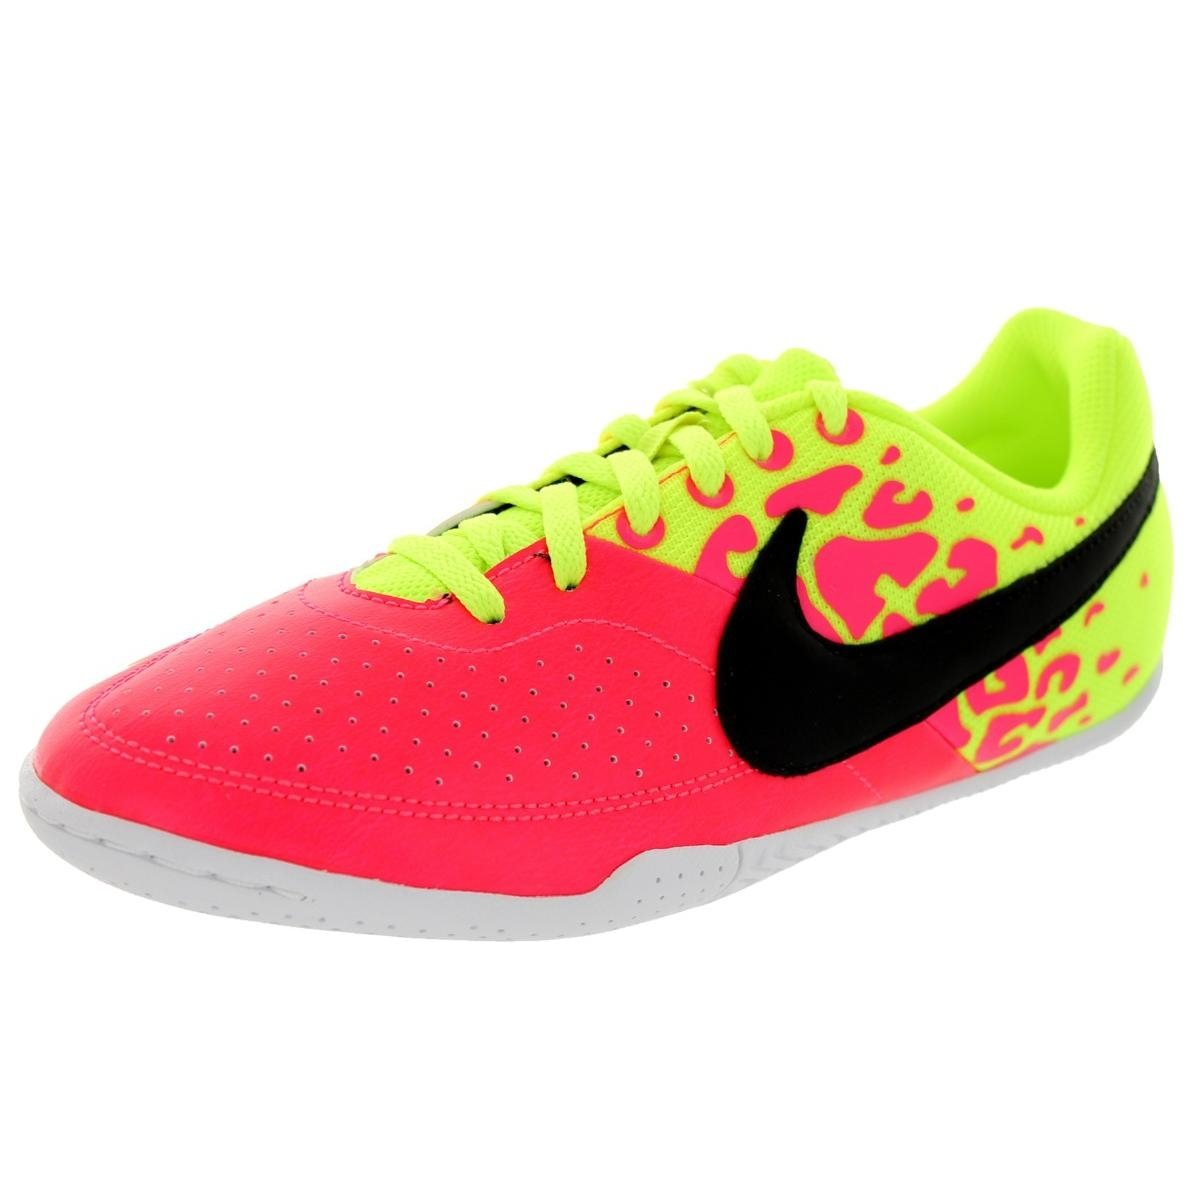 5b99cb8c393 Amazon.com  Nike Kids Jr Elastico II Hyper Punch Black Volt White Indoor  Soccer Shoe 4.5 Kids US  Sports   Outdoors